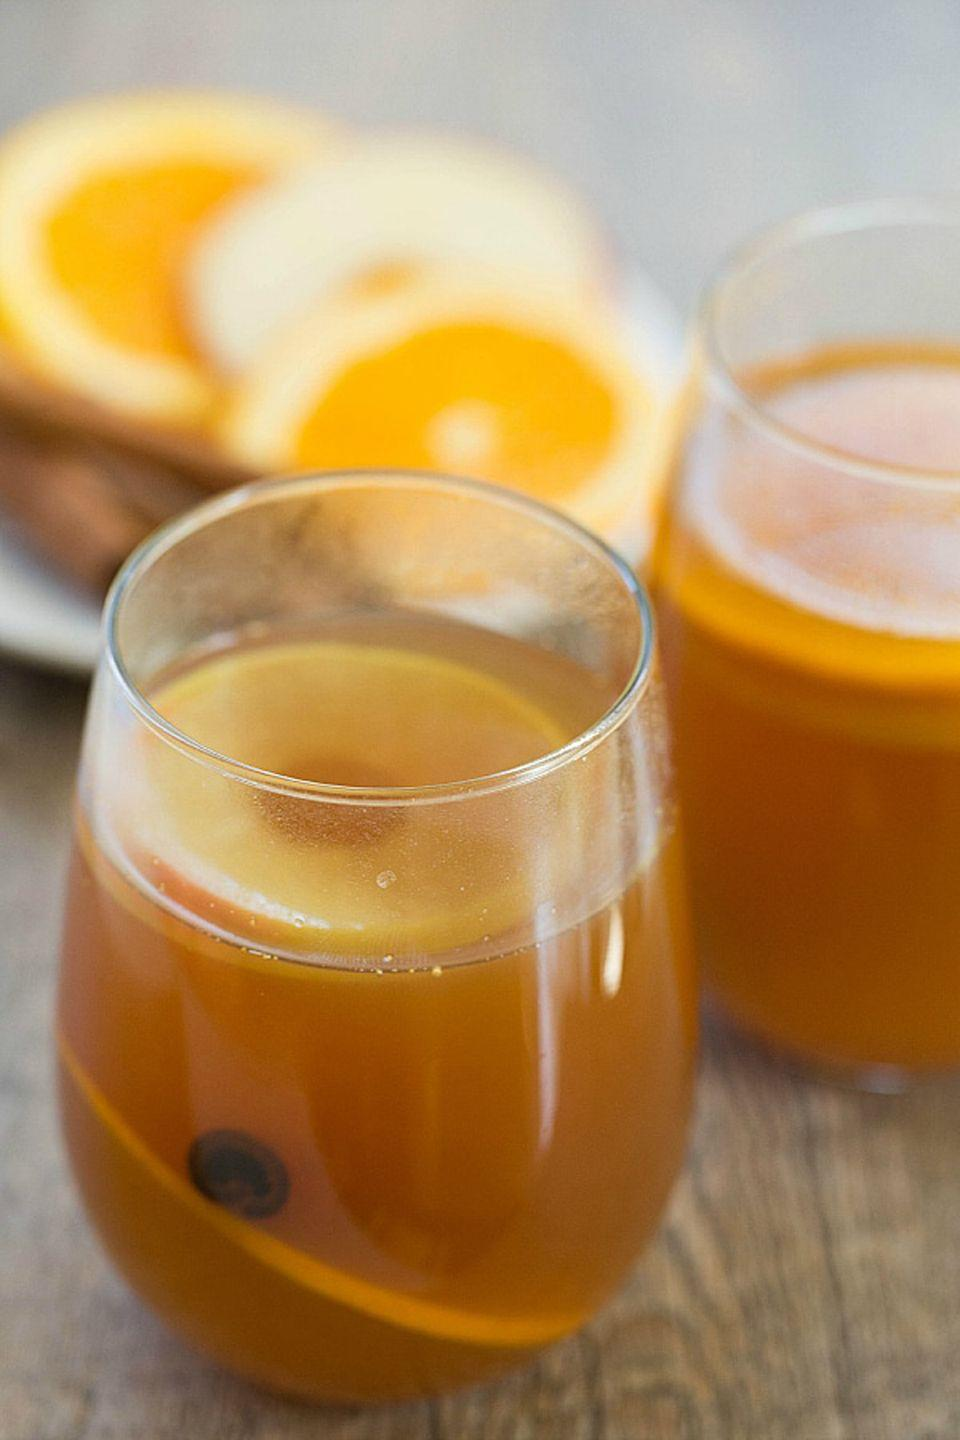 """<p>What is brunch without a few cocktails? Warm up your guests on a cold day-after-Thanksgiving morning by serving hot apple cider ... with a kick!</p><p><strong>Get the recipe at <a href=""""http://www.browneyedbaker.com/hot-apple-cider-rum-punch-recipe/"""" rel=""""nofollow noopener"""" target=""""_blank"""" data-ylk=""""slk:Brown Eyed Baker"""" class=""""link rapid-noclick-resp"""">Brown Eyed Baker</a>.</strong></p>"""